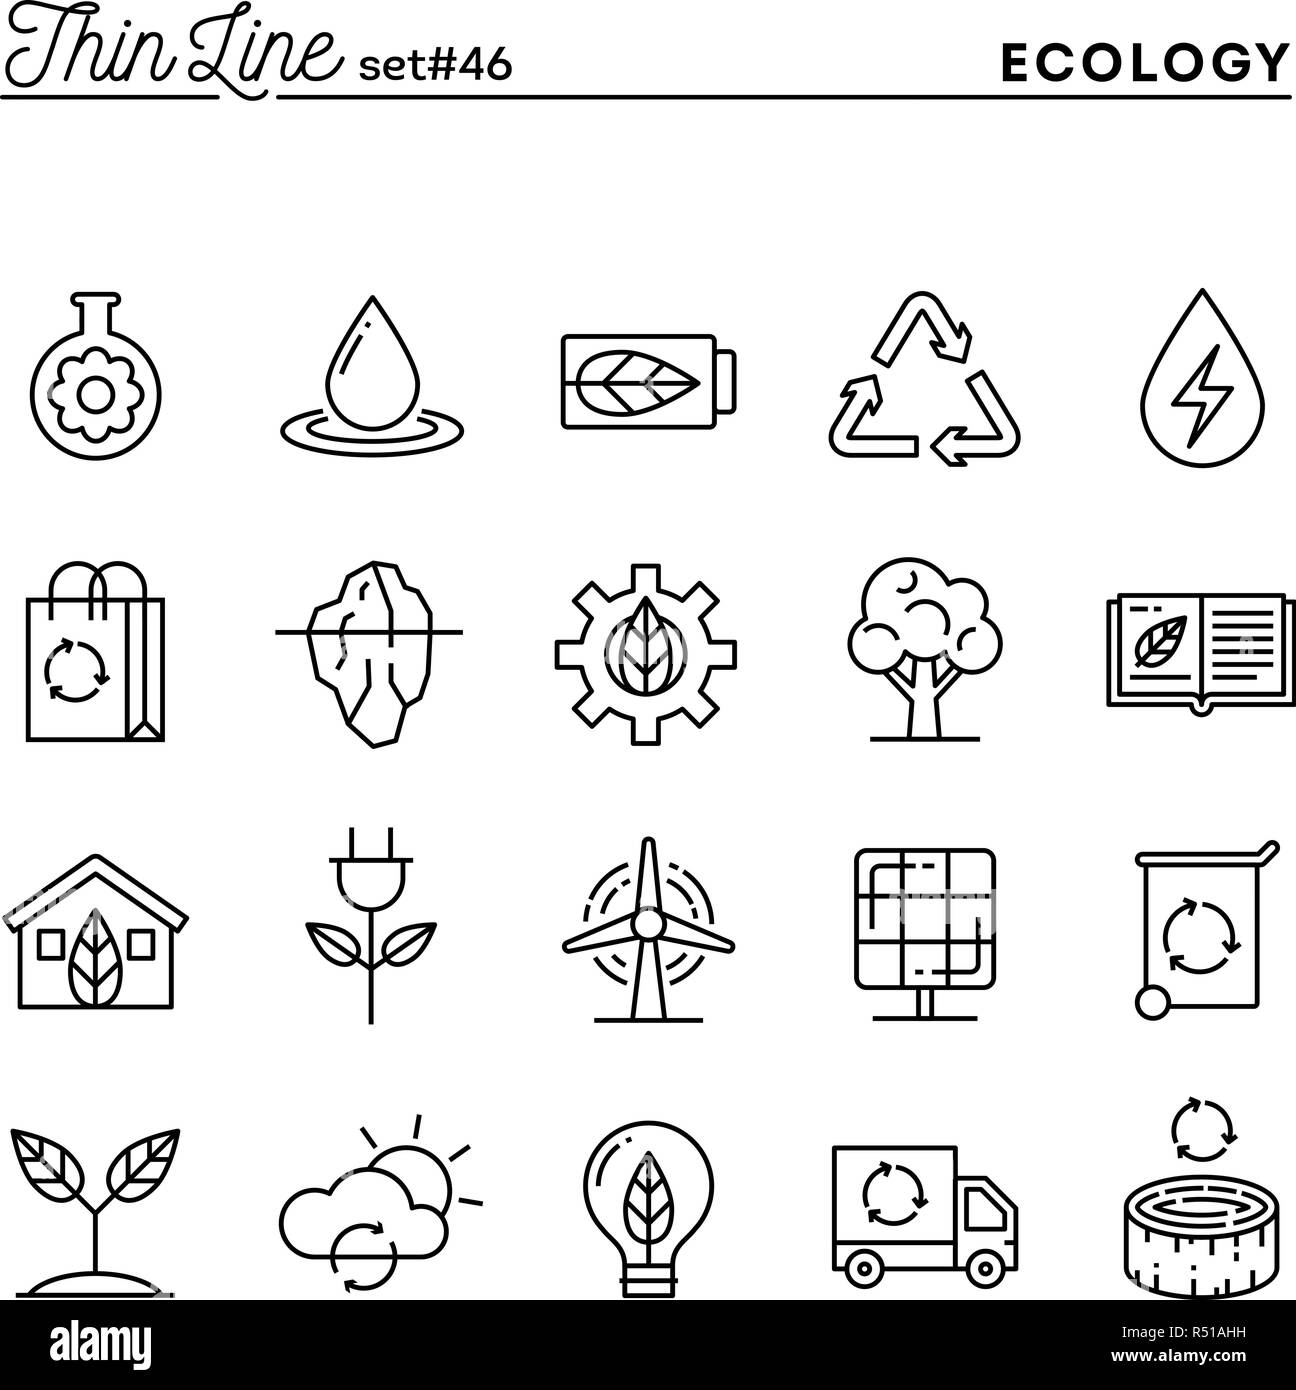 Ecology, nature, clean energy, recycling and more, thin line icons set - Stock Image